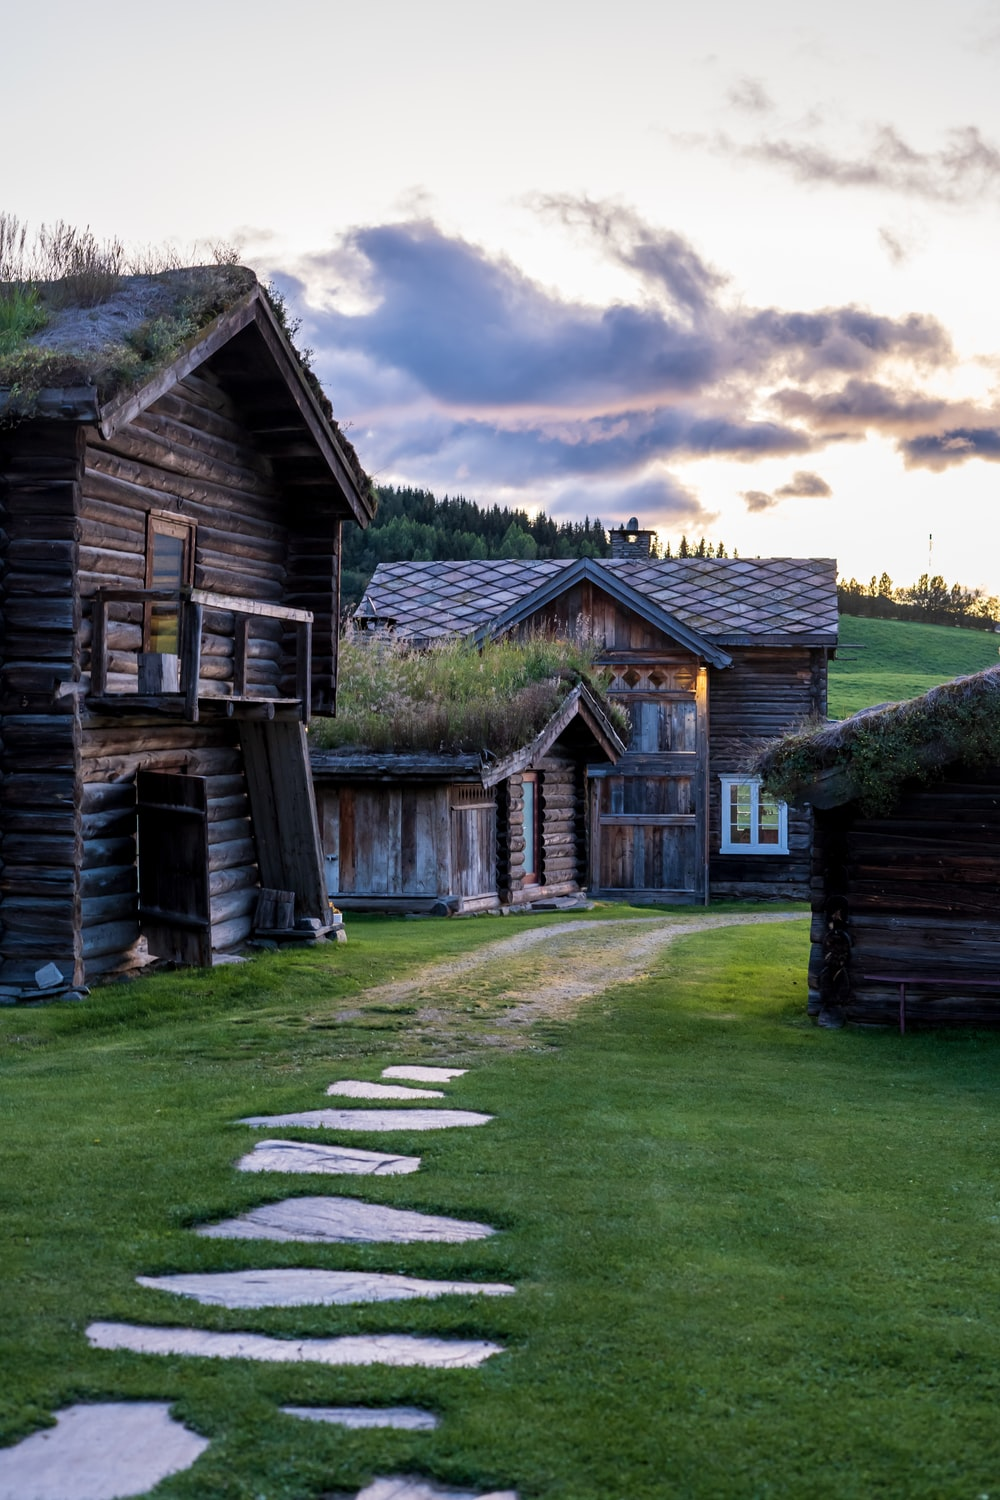 brown wooden house and grass field